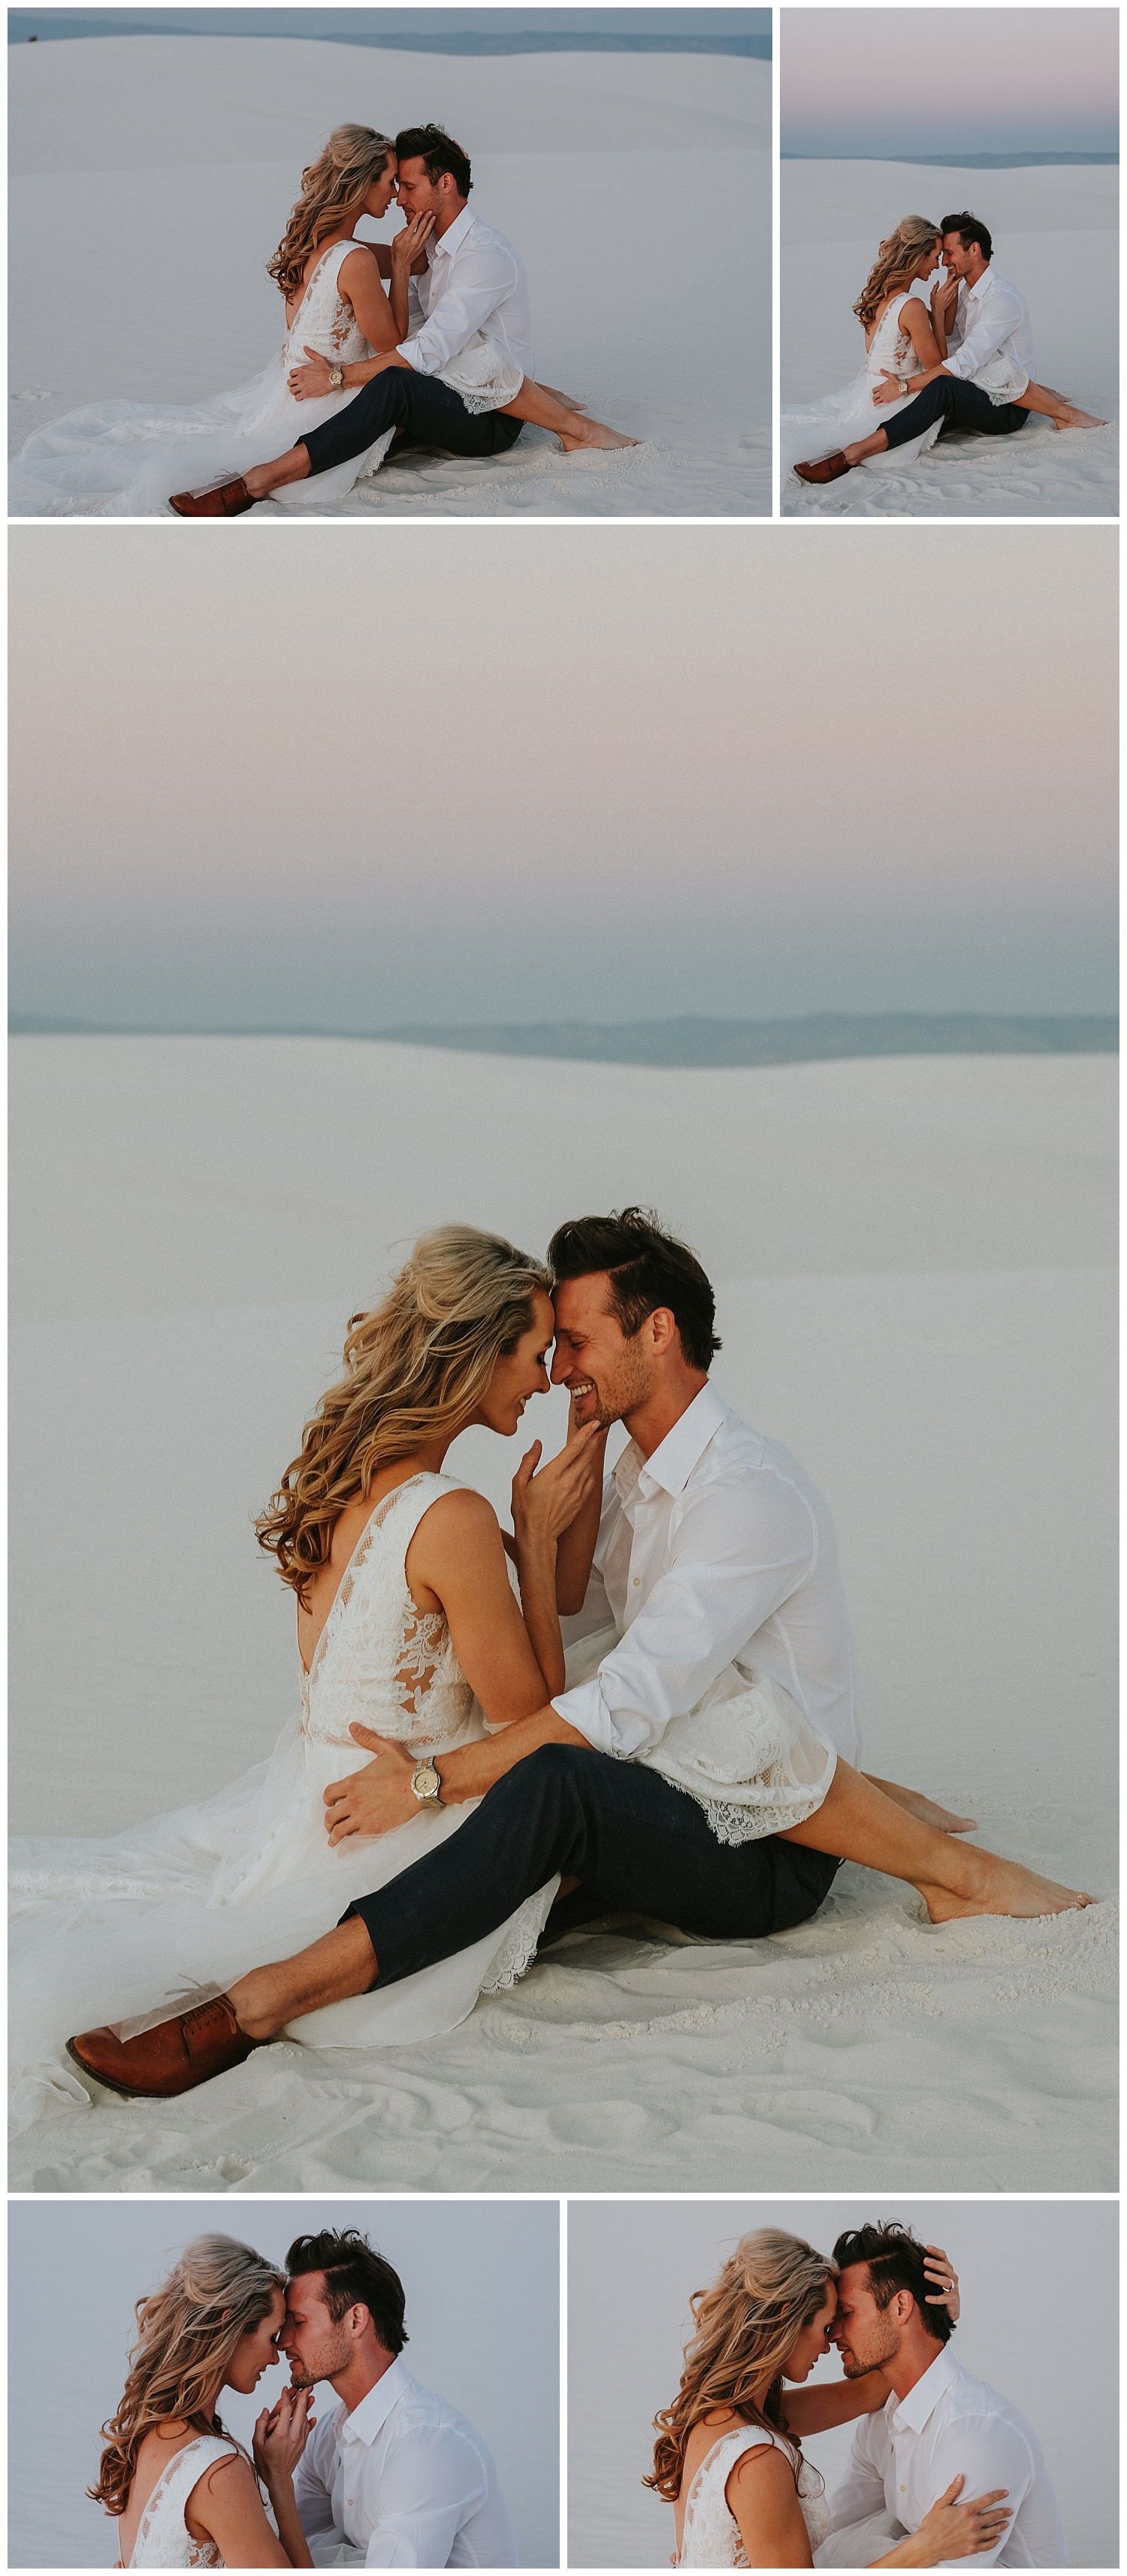 New Mexico Wedding Photographer, New Mexico Elopement Photographer, New Mexico Destination Wedding, White Sands Destination Wedding, White Sands Adventure Wedding